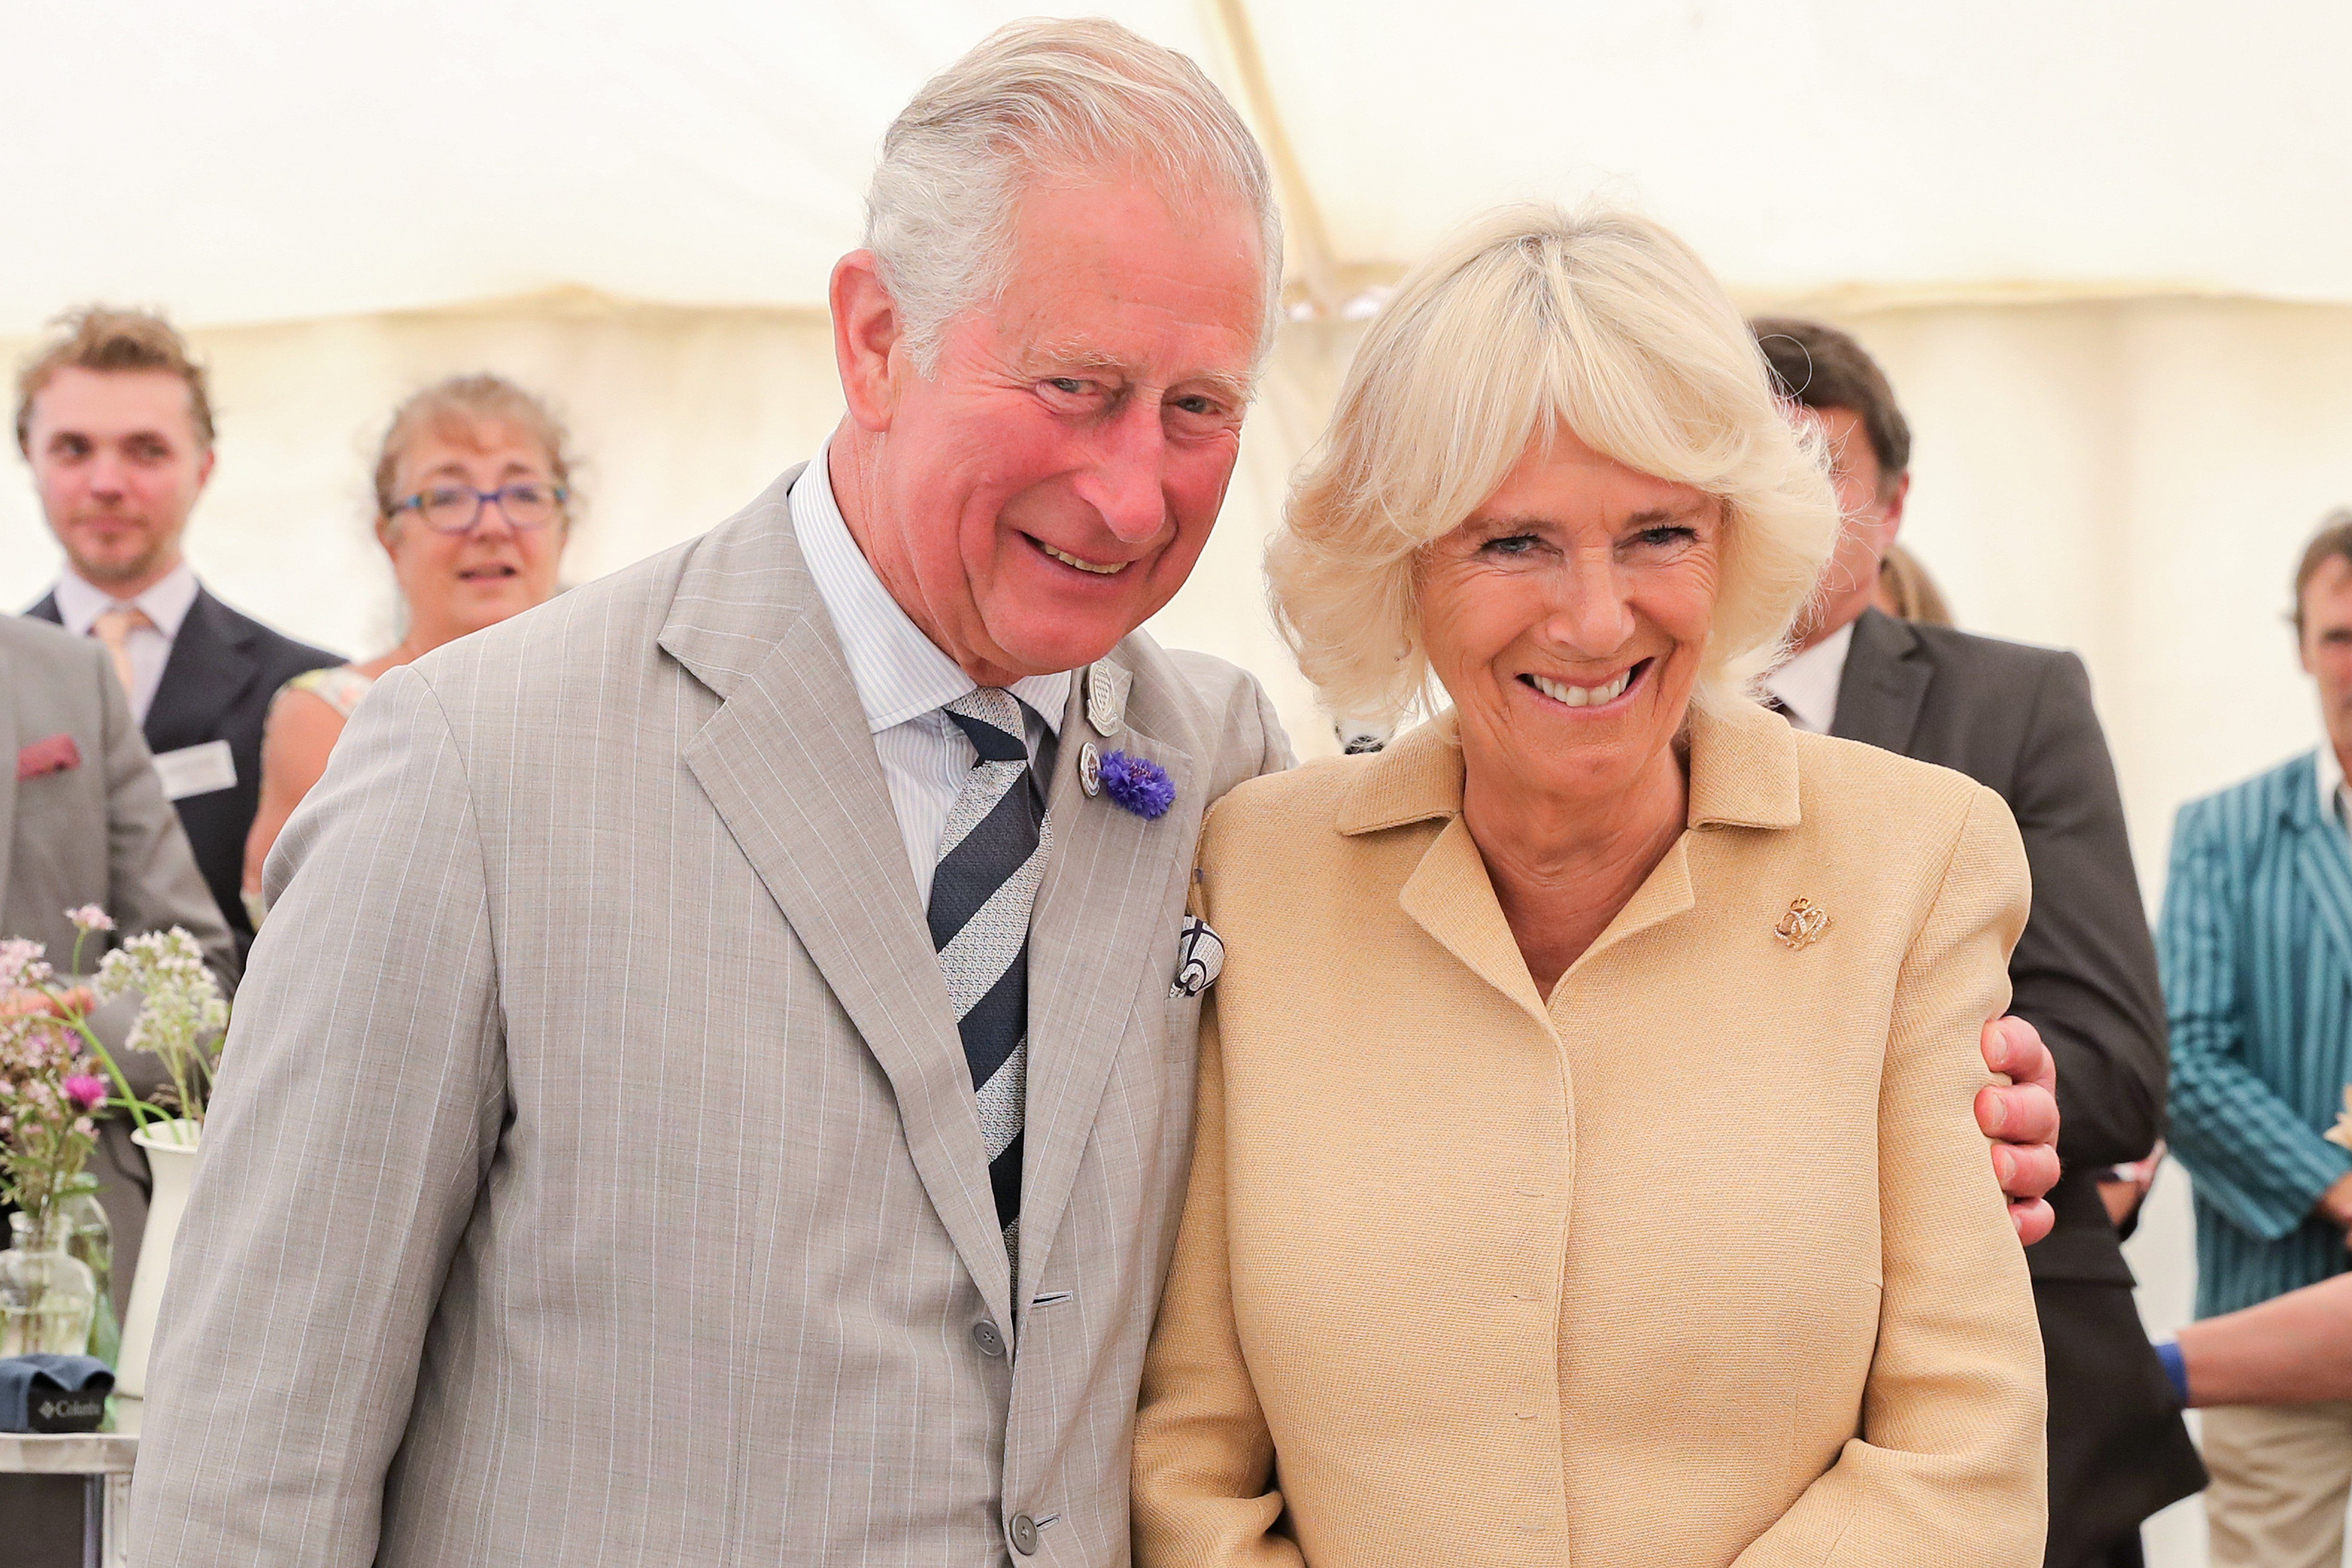 Mandatory Credit: Photo by Shutterstock (10340035bg) Camilla Duchess of Cornwall is sung Happy Birthday by Prince Charles and the crowds gathered at the National Parks Big Picnic celebration in honour of all 15 of the UKs National Parks, during an official visit to Simonsbath, England. Held in Exmoor National Park the picnic marks 70 years since they were created by the 1949 National Parks and Access to the Countryside Act. Royal visit to Somerset, UK - 17 Jul 2019